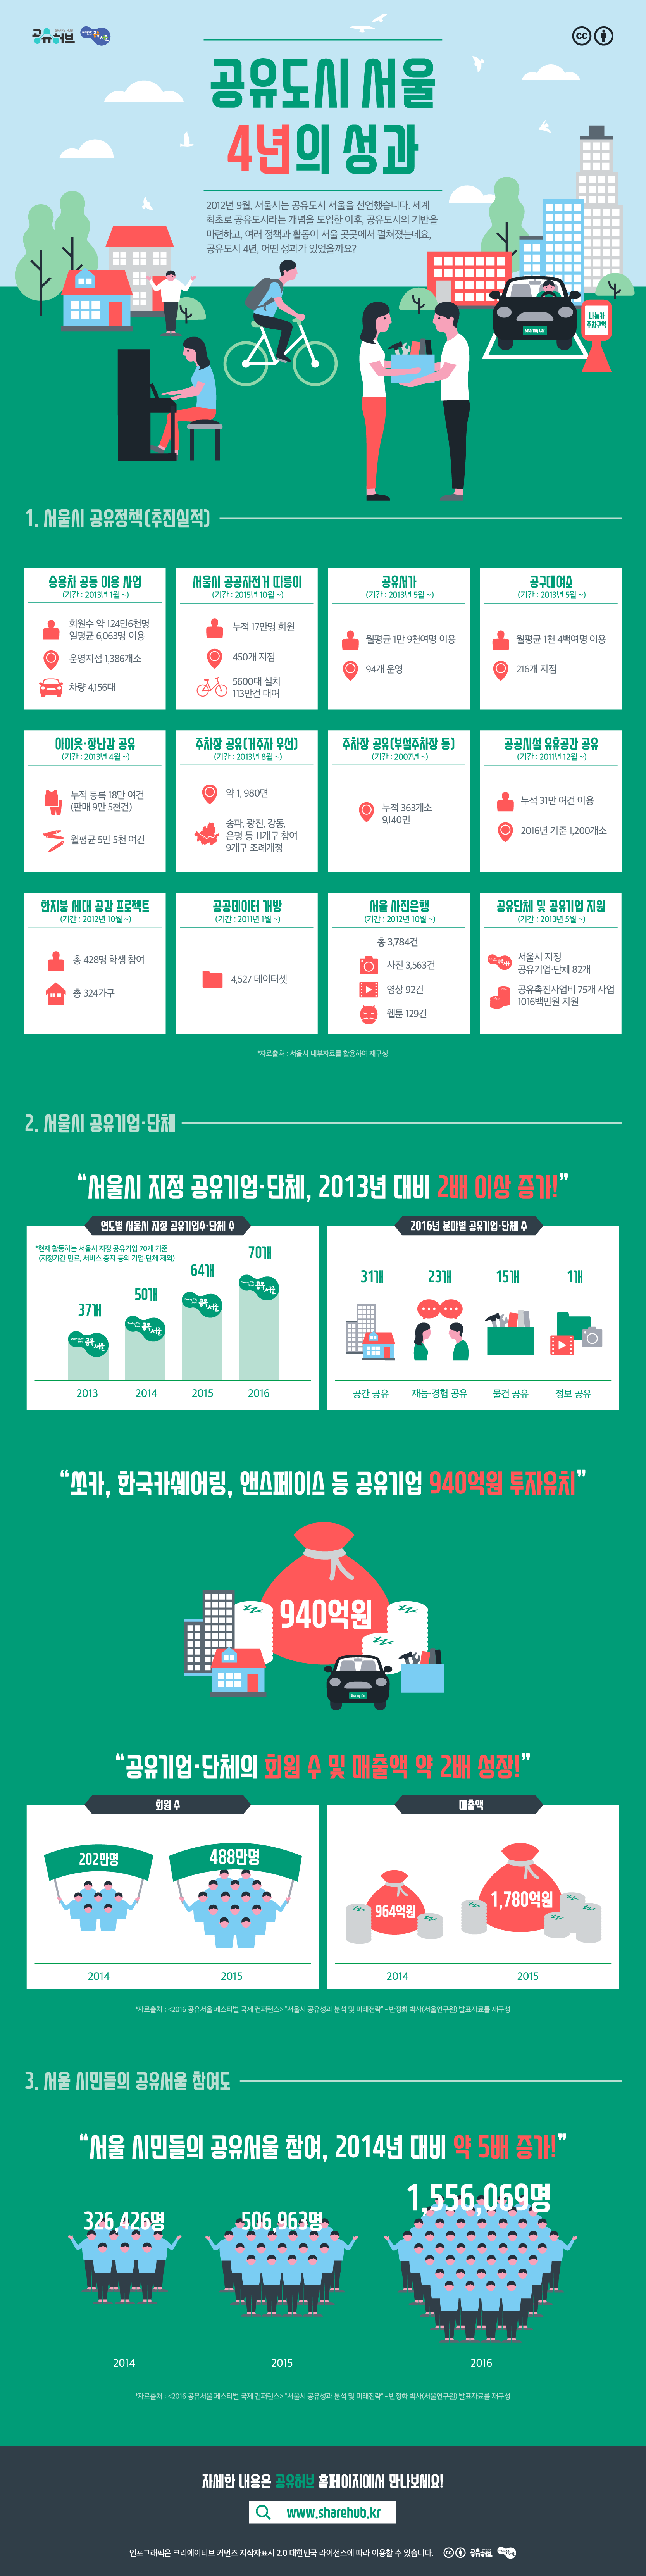 fin_infographic_4_poster